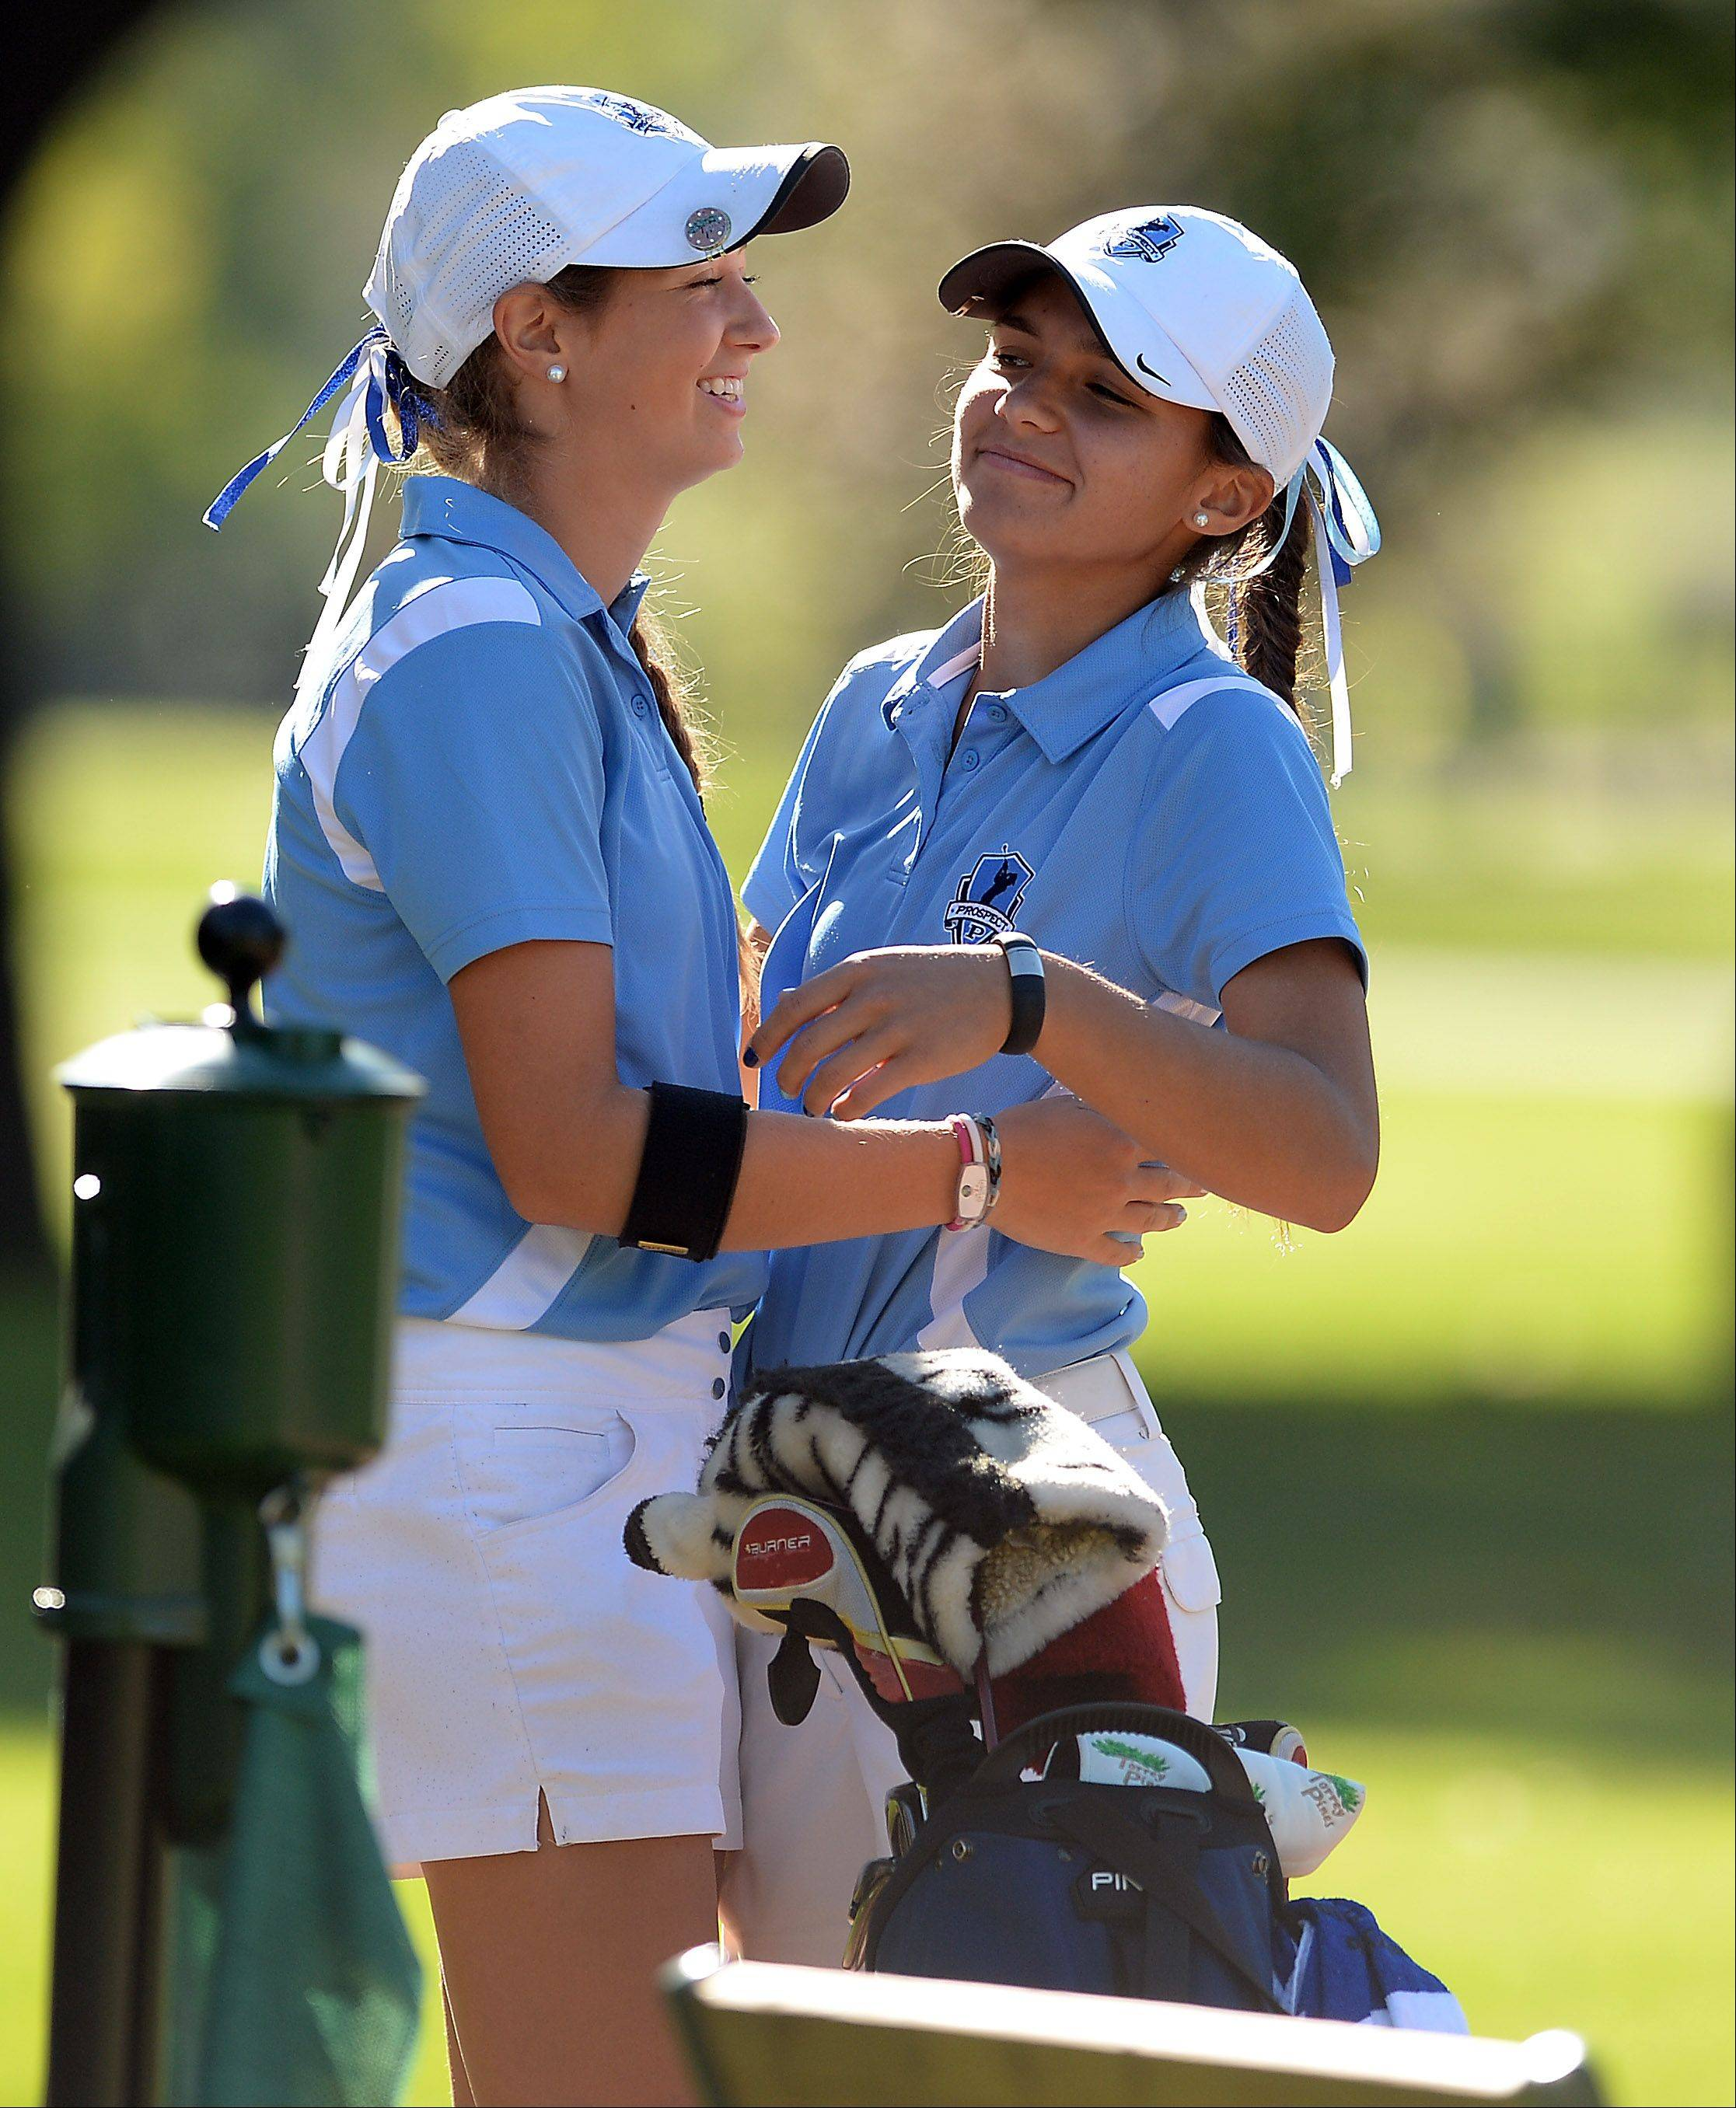 Prospect's Ally Scaccia, right, and teammate Kiley Walsh come together for a hug before the start of the girls golf regional at Mt. Prospect Golf Club on Wednesday.